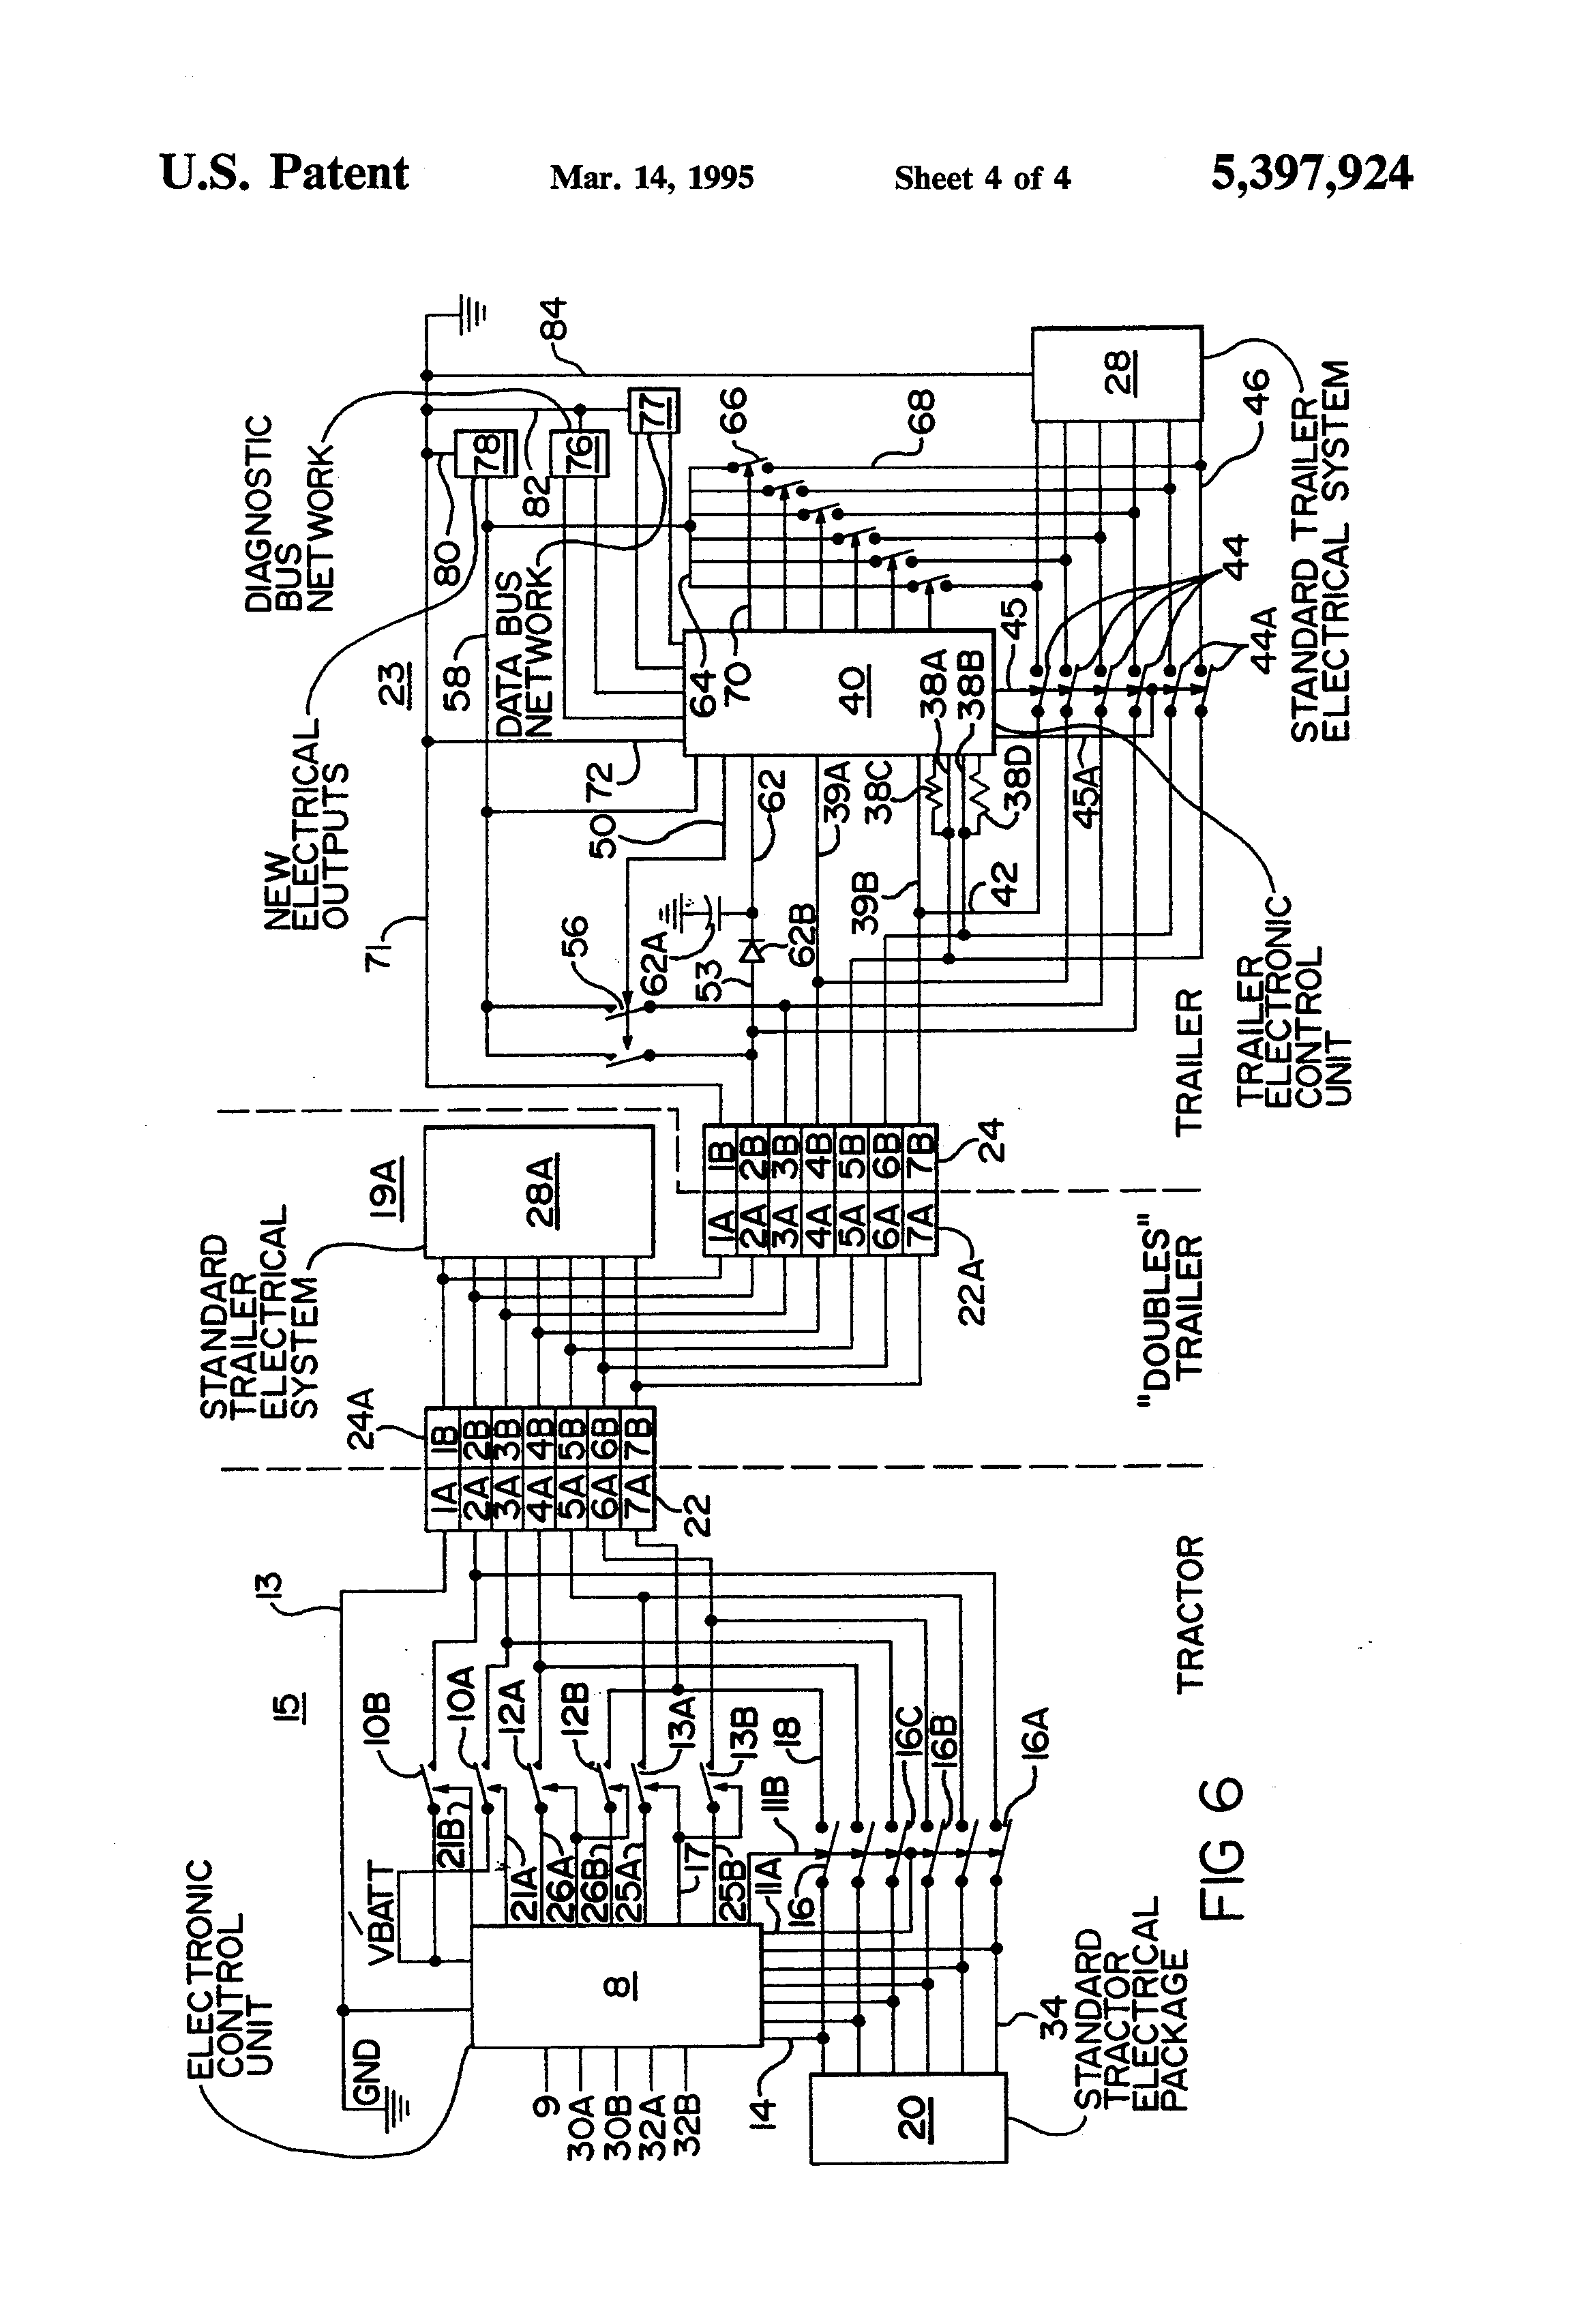 wiring schematic for black cat jb 2000 patent us5397924 - truck tractor and trailer electrical ...